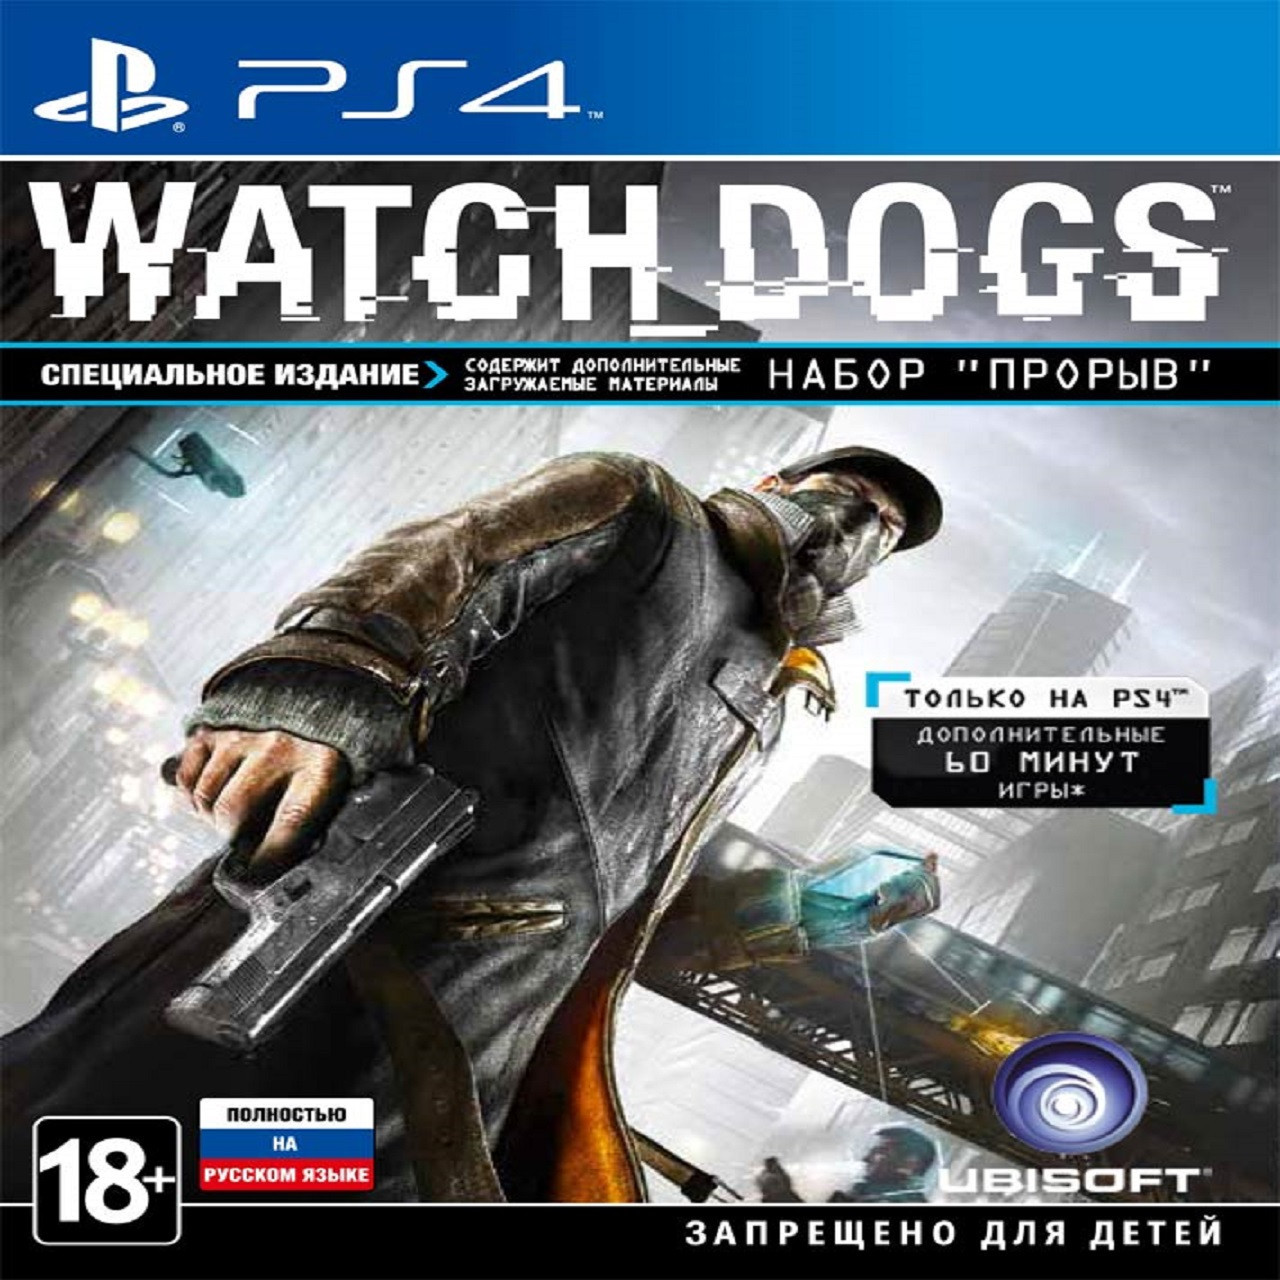 Watch Dogs RUS PS4